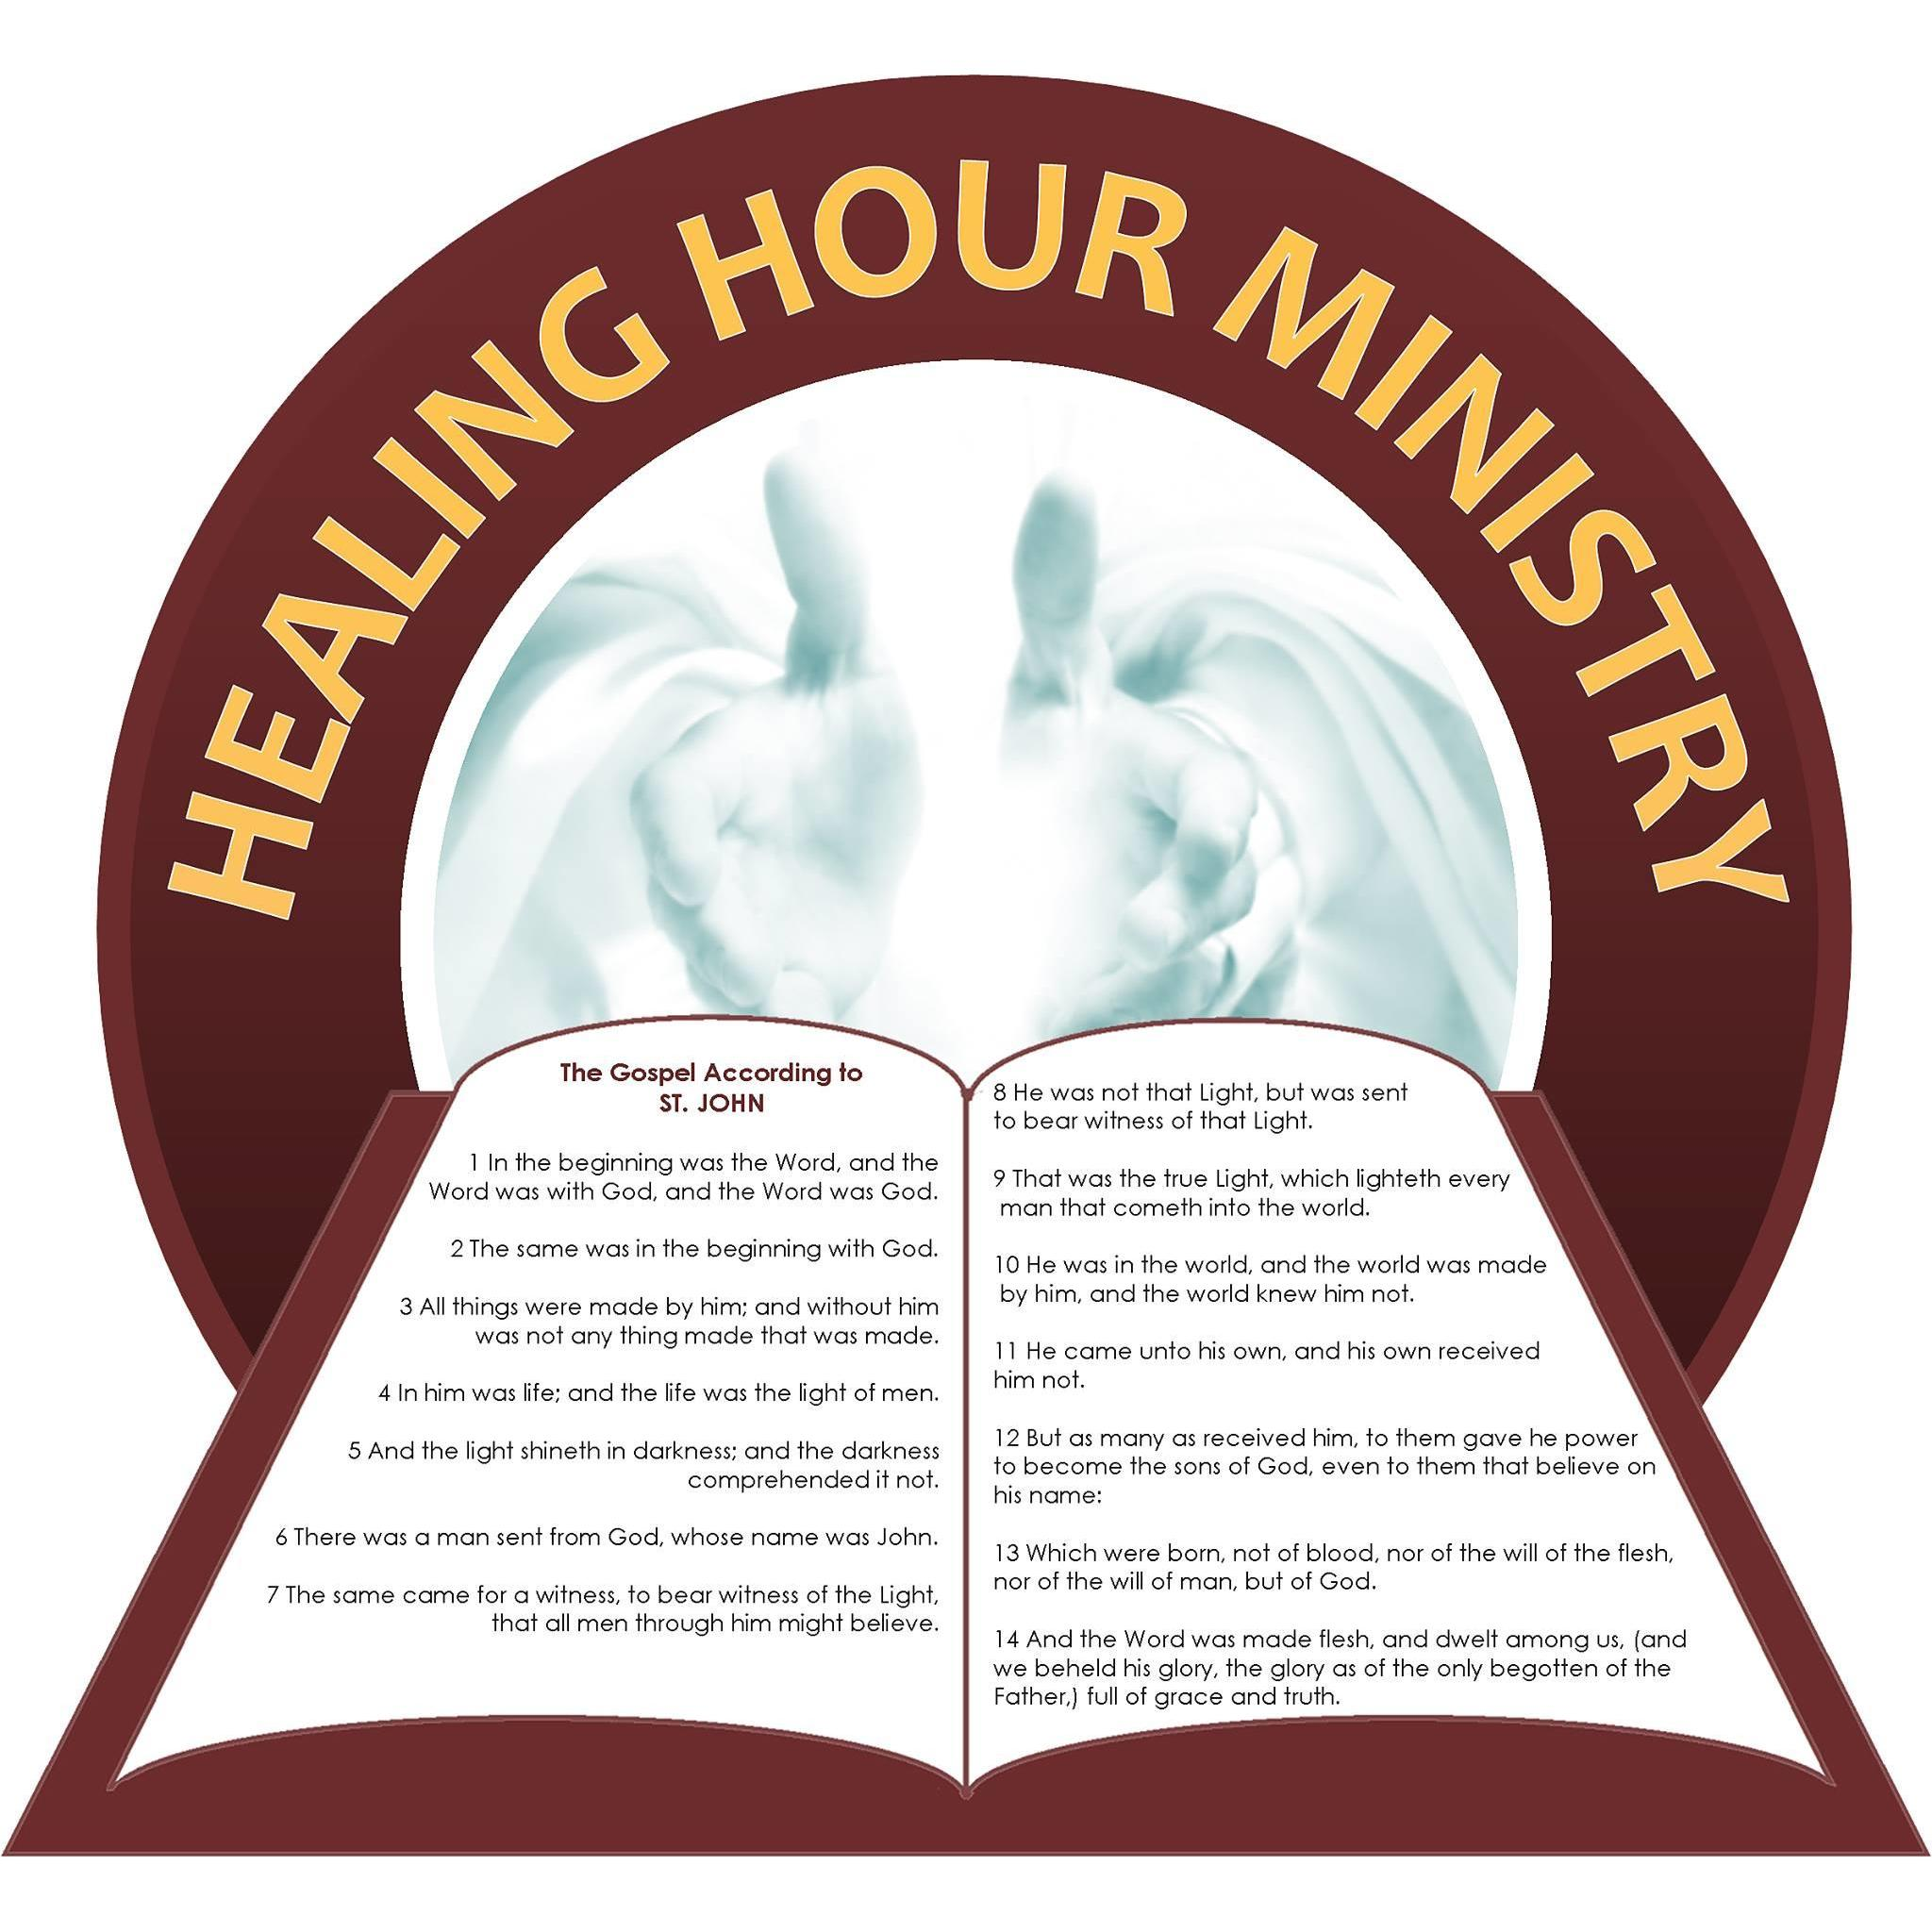 Healing Hour Ministry